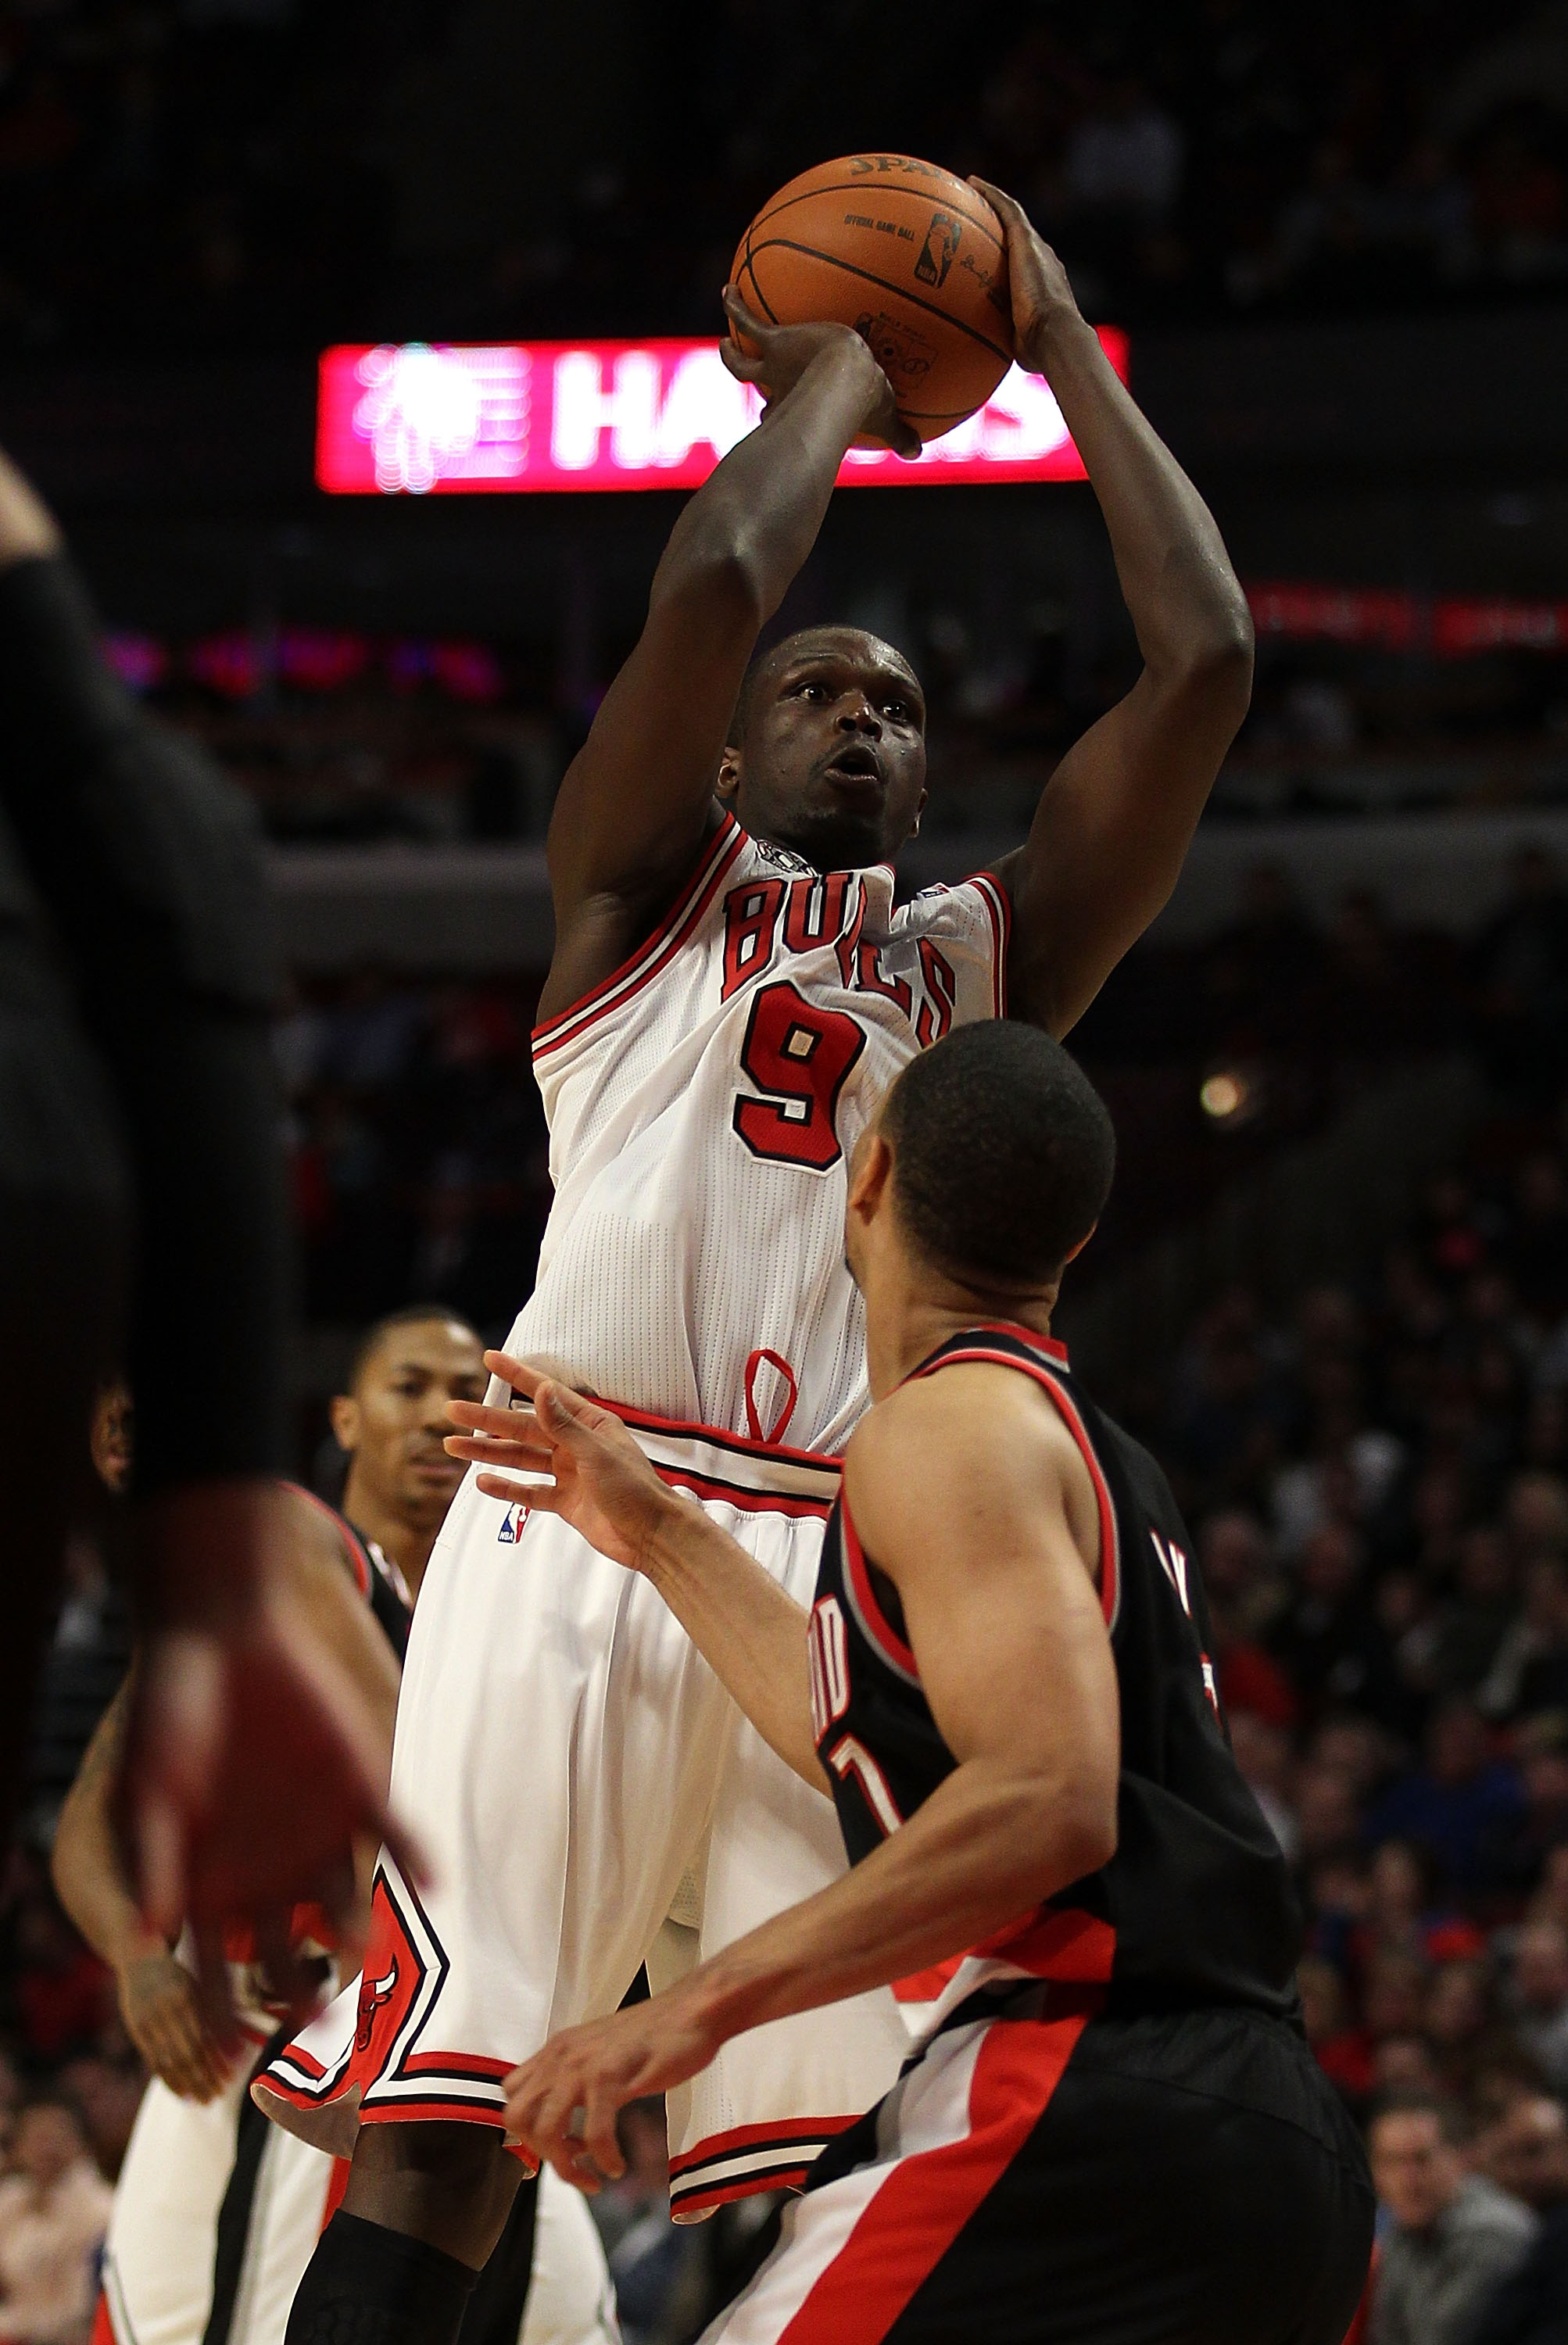 CHICAGO - NOVEMBER 01: Loul Deng #9 of the Chicago Bulls puts up a shot over Brandon Roy #7 of the Portland Trail Blazers on his way to a game-high 40 points at the United Center on November 1, 2010 in Chicago, Illinois. The Bulls defeated the Trail Blaze